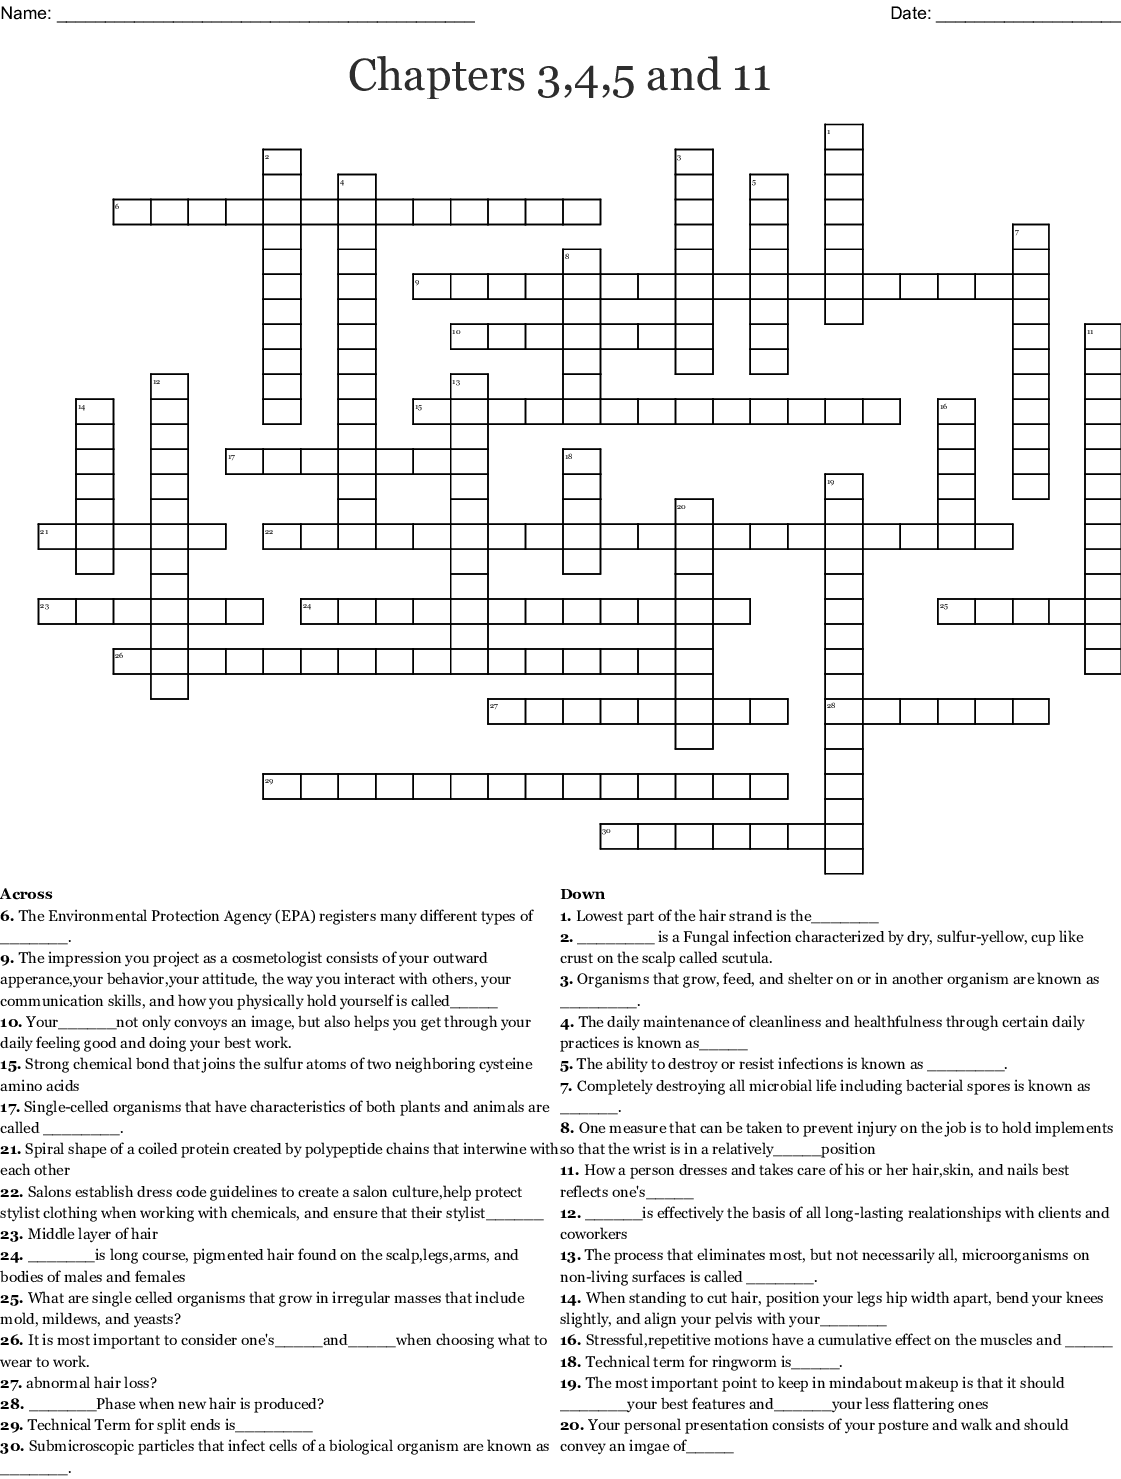 Chapters 3 4 5 And 11 Crossword